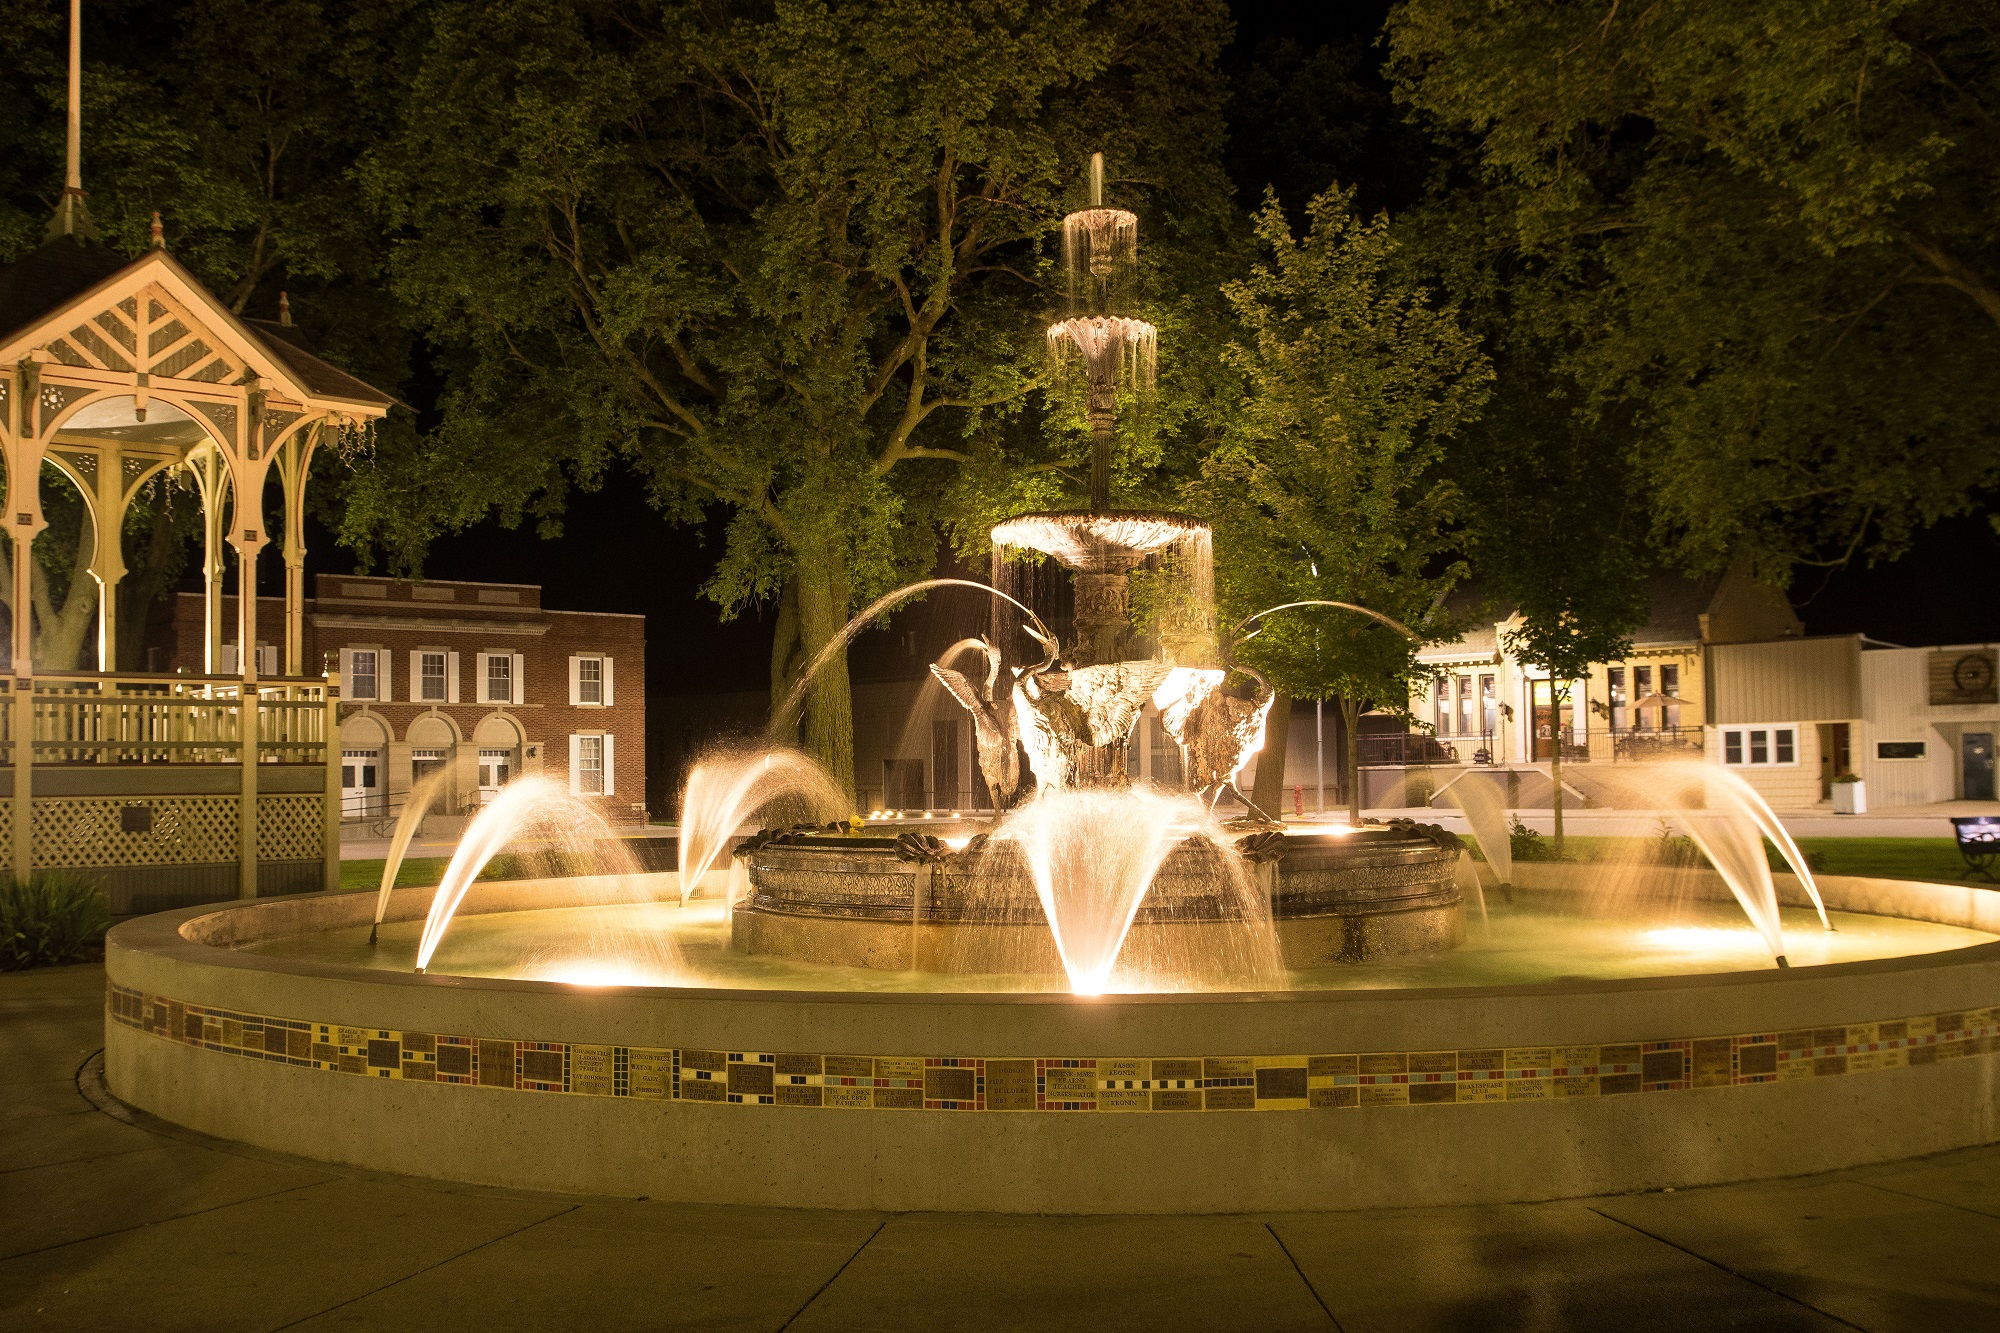 The fountain in Lake City town square is lit for the annual Western Days celebration. Photo credit: Darcy Dougherty Maulsby